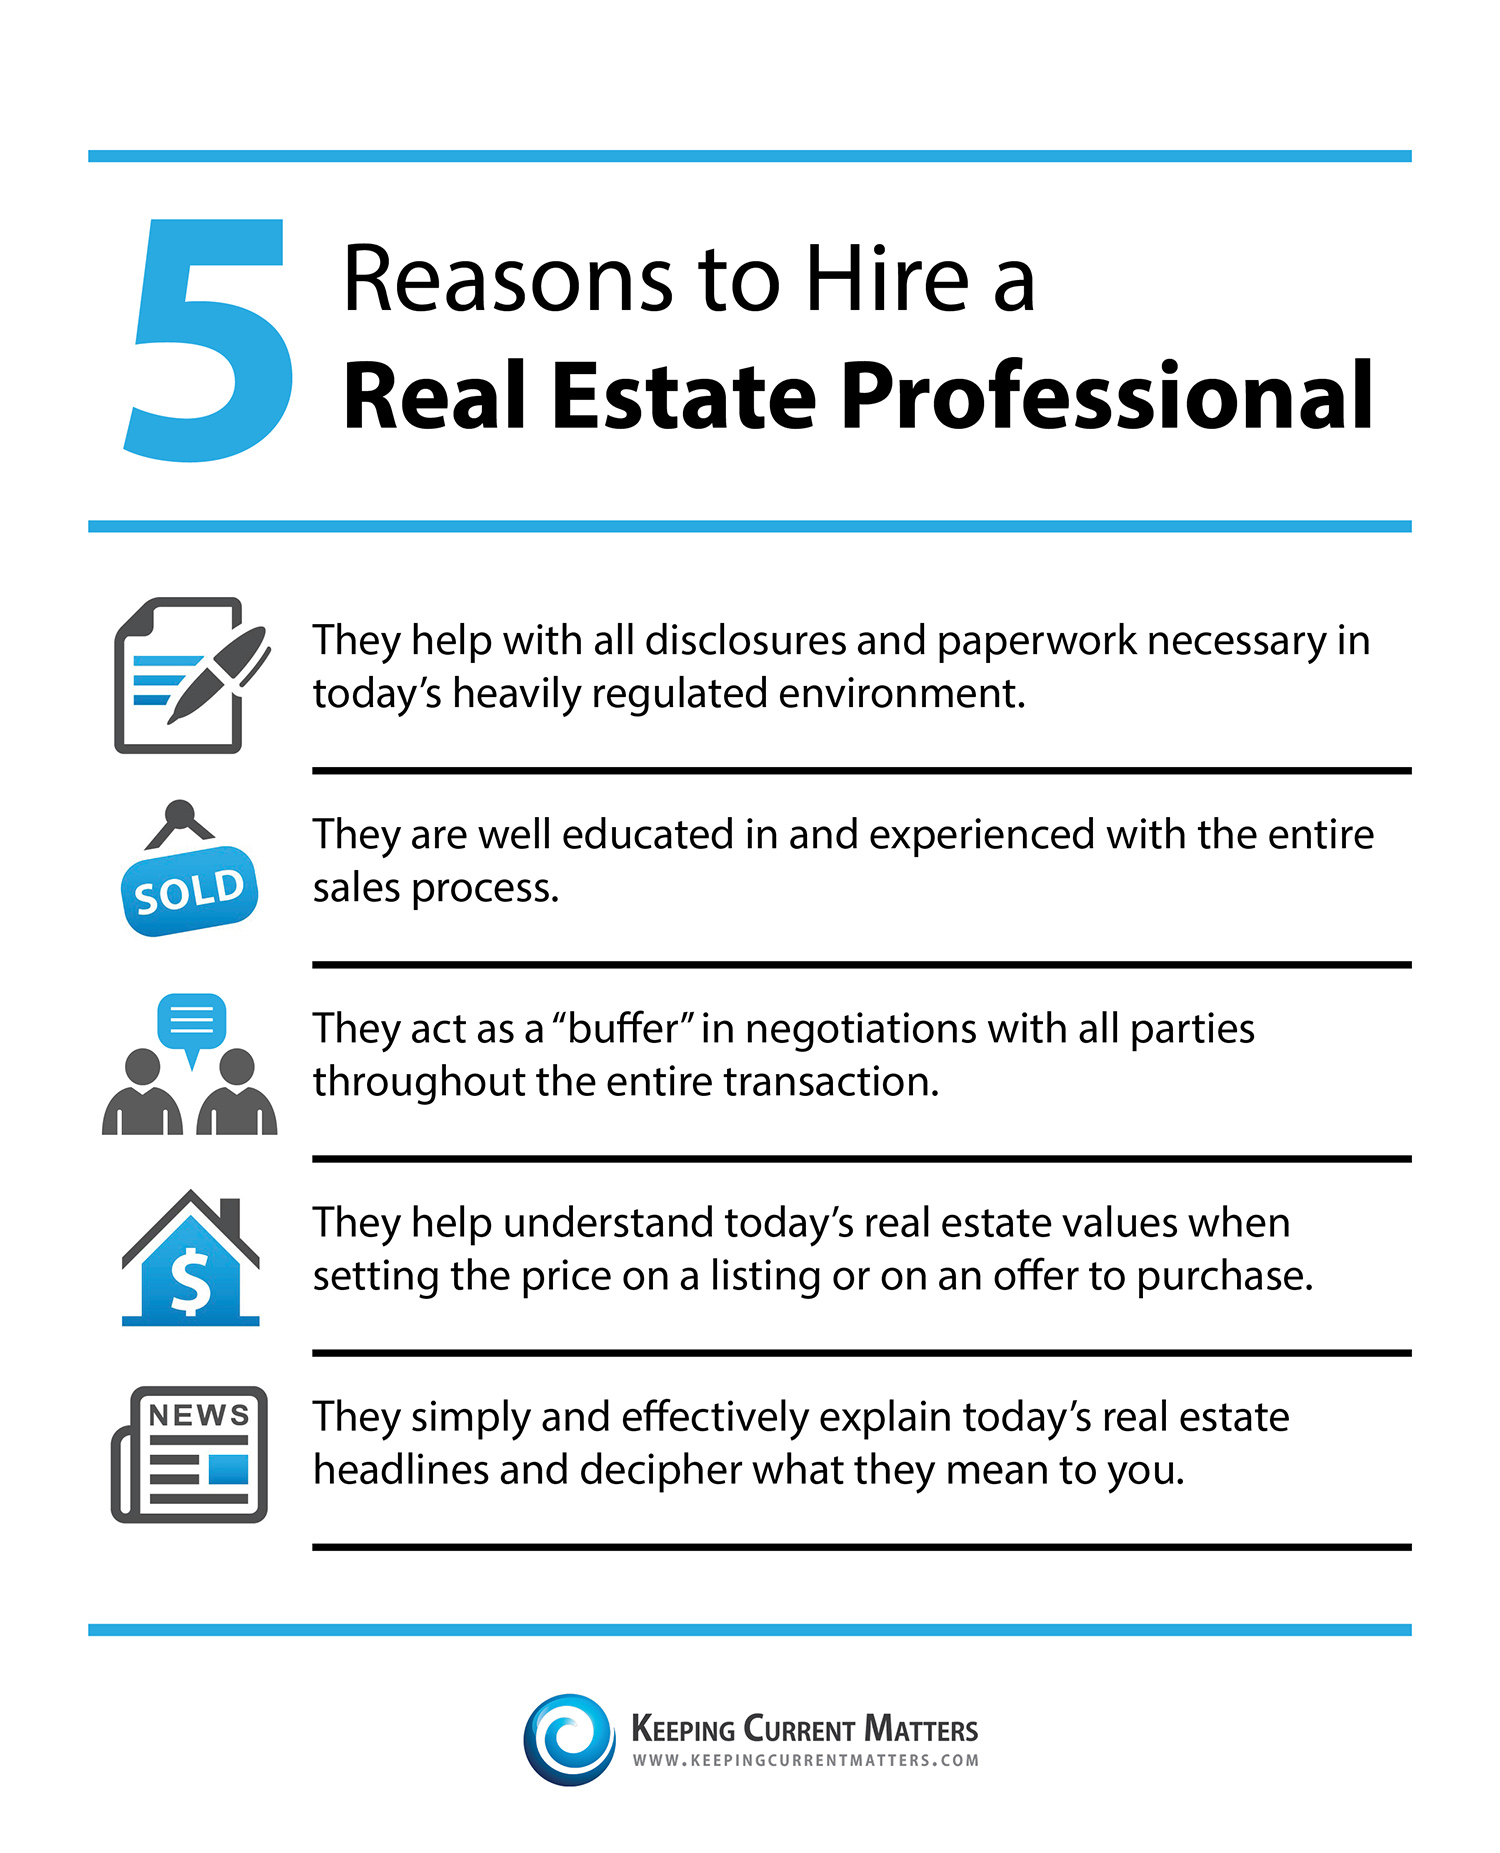 5 Reasons to Hire a Real Estate Professional | The KCM Crew